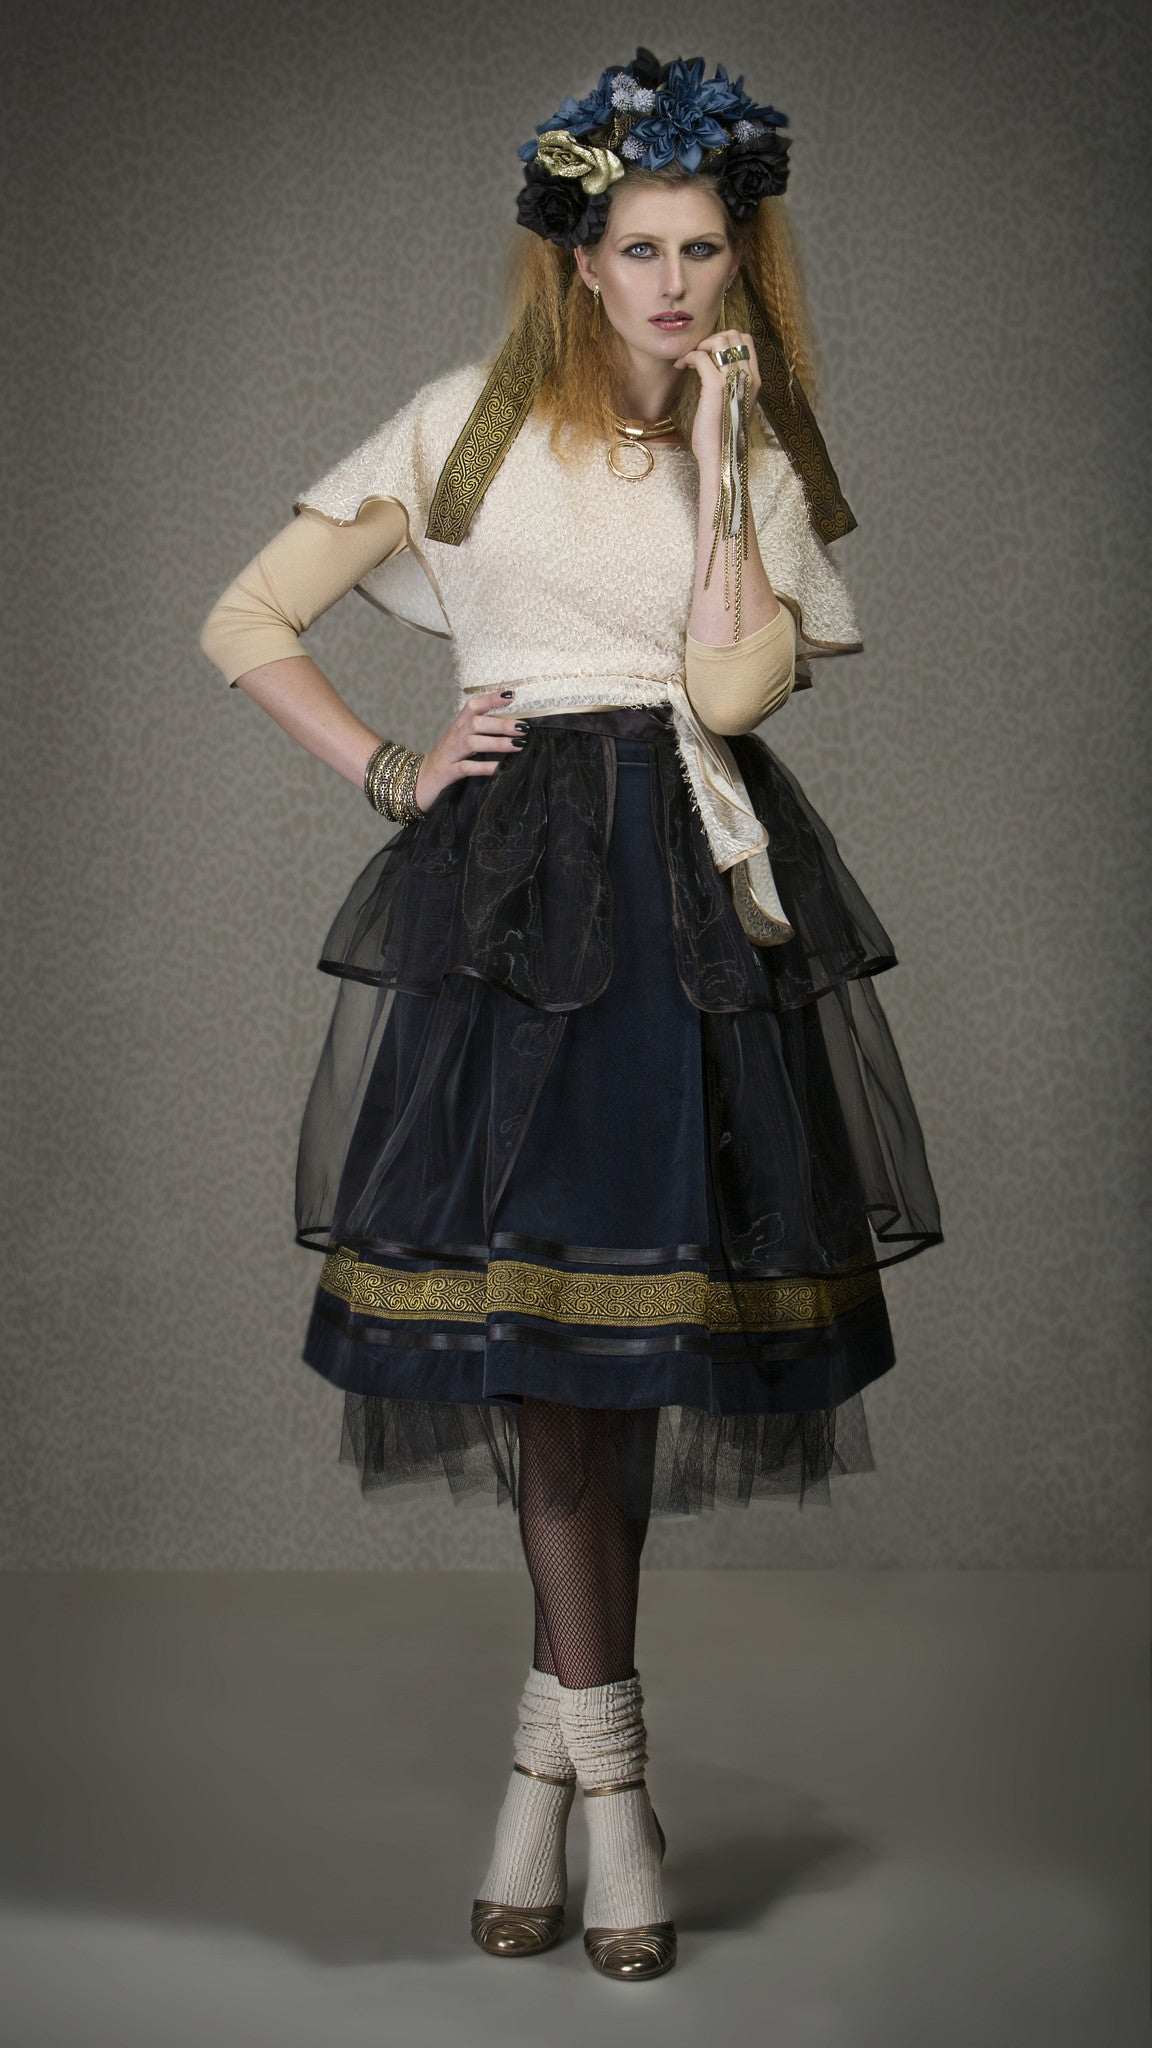 Skirt - black organza overskirt (made to order)